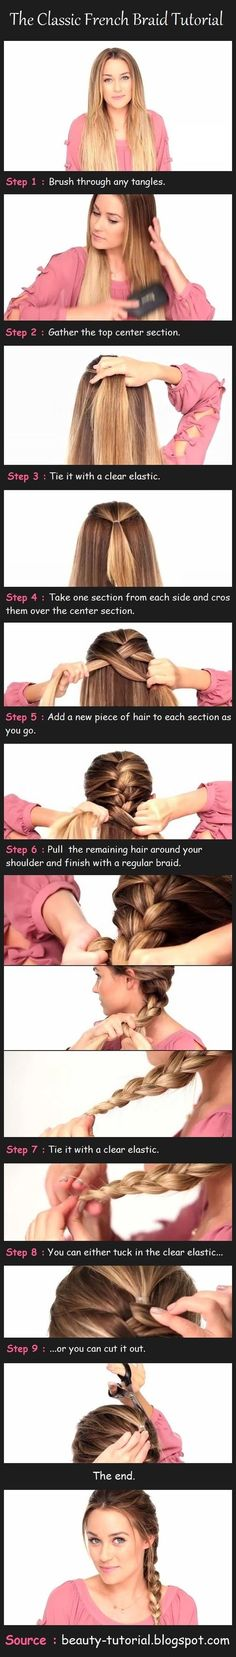 The Classic French Braid Tutorial | Beauty Tutorials *Maybe I'll finally learn. by Mariya <3